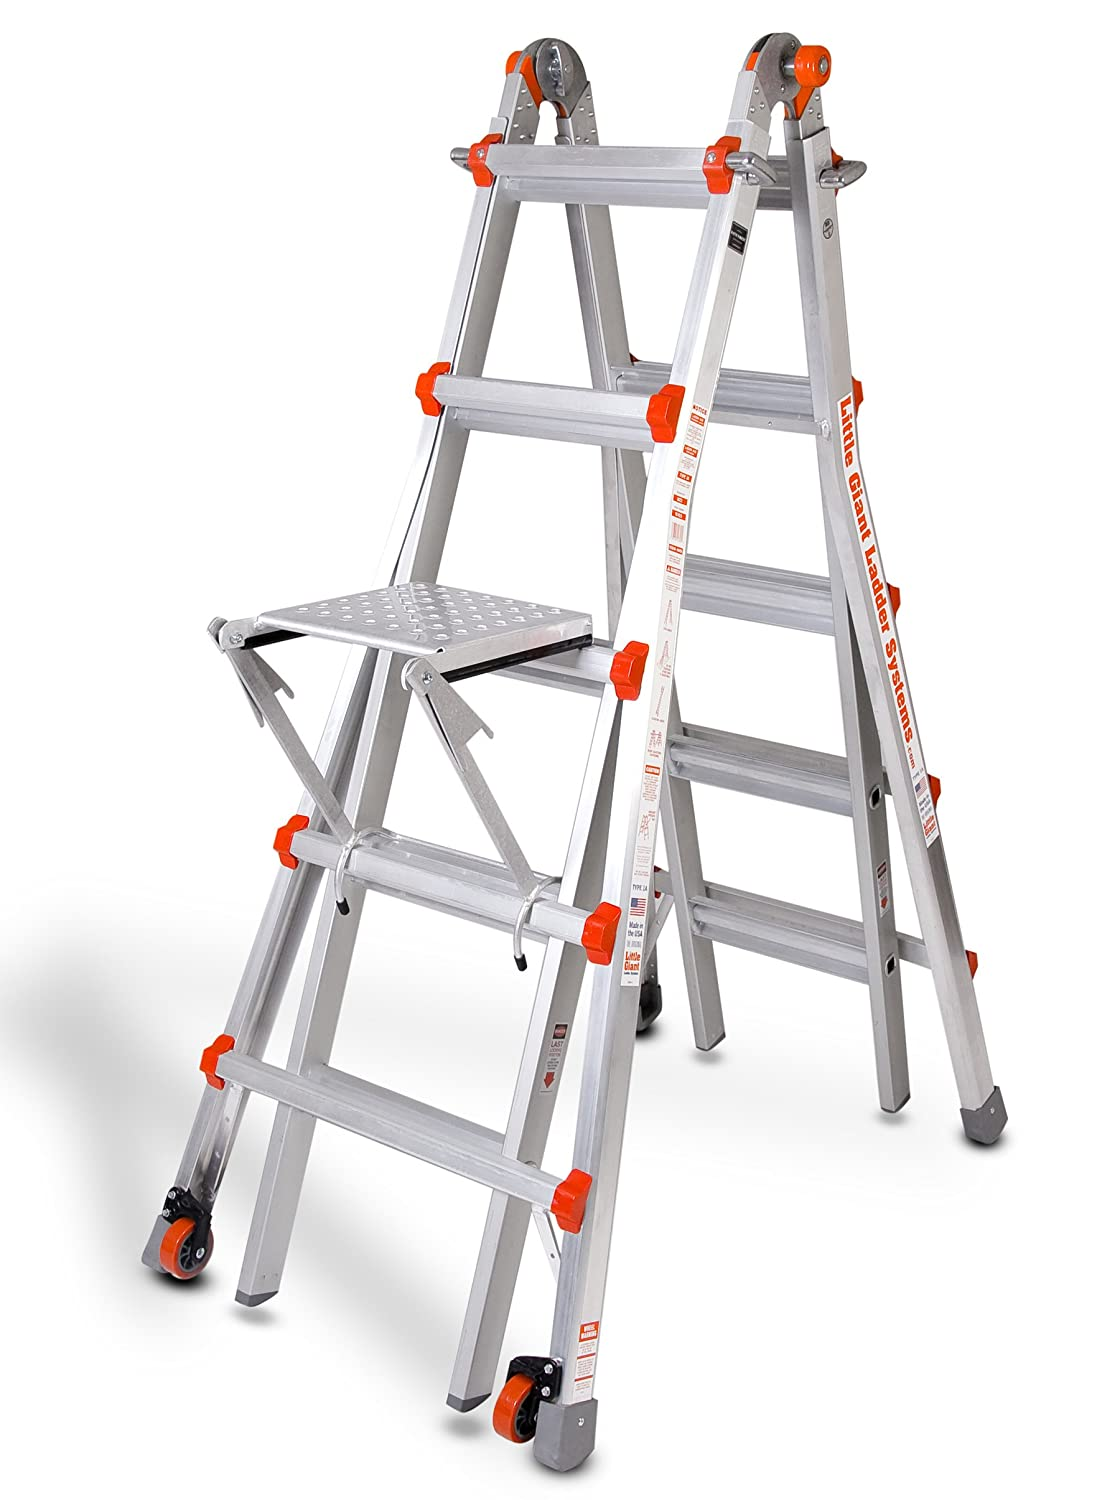 Little Giant Classic 10103lgw 300 Pound Duty Rating Always Help Staircase Diagram East Coast Stairs Company Inc Ladder System With Work Platform 22 Foot Home Improvement